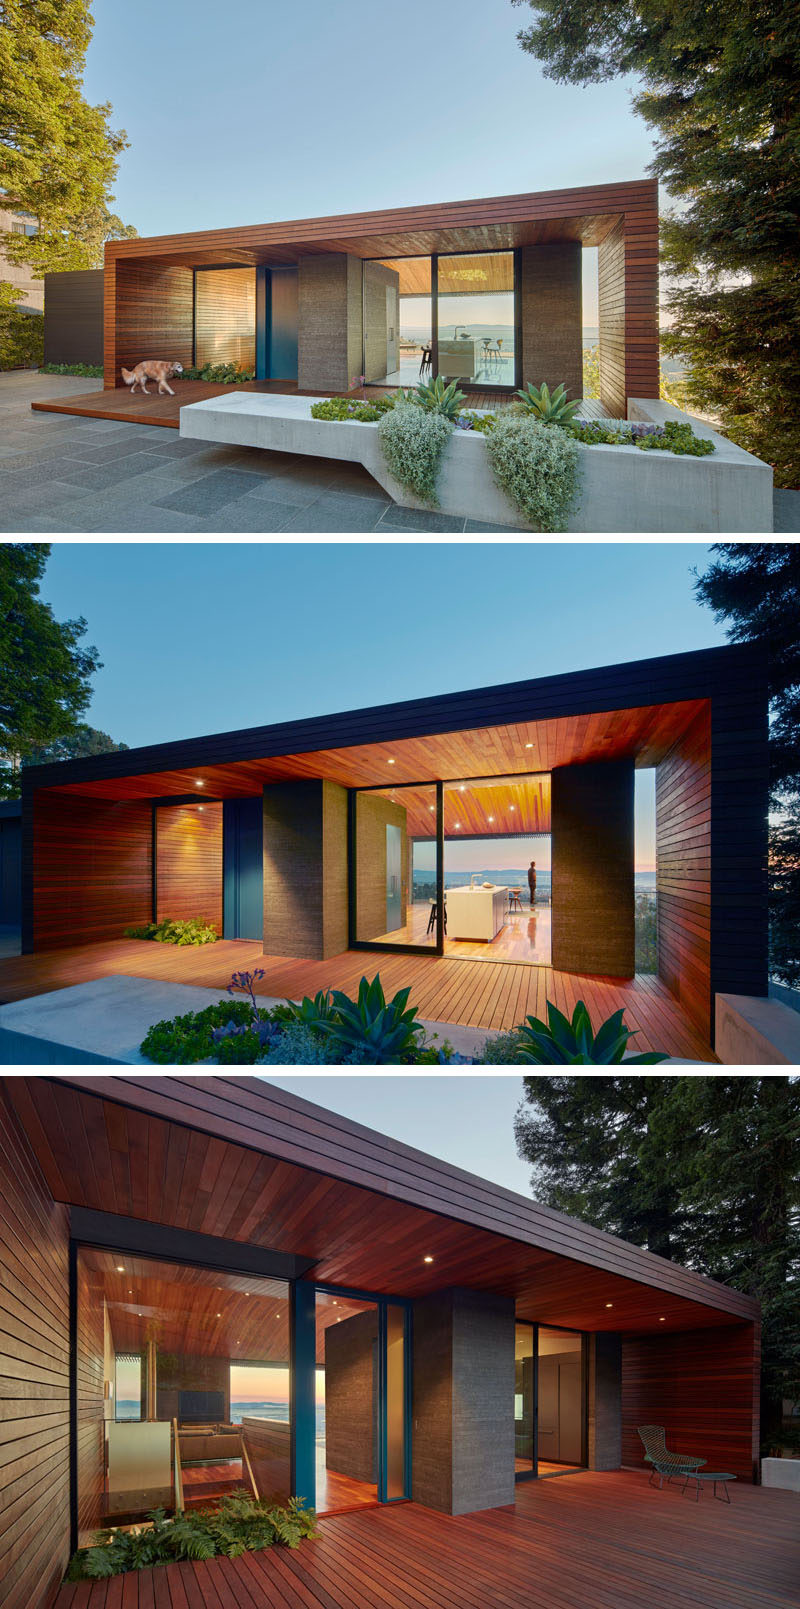 This modern house features a wood tube that connects the garden with the main entrance of the home and continues into the living areas. A large blue front door acts as the main entrance, however the kitchen has a large sliding glass door that opens to the small garden area and allows for outdoor dining, with a concrete planter and bench defining the dining area.